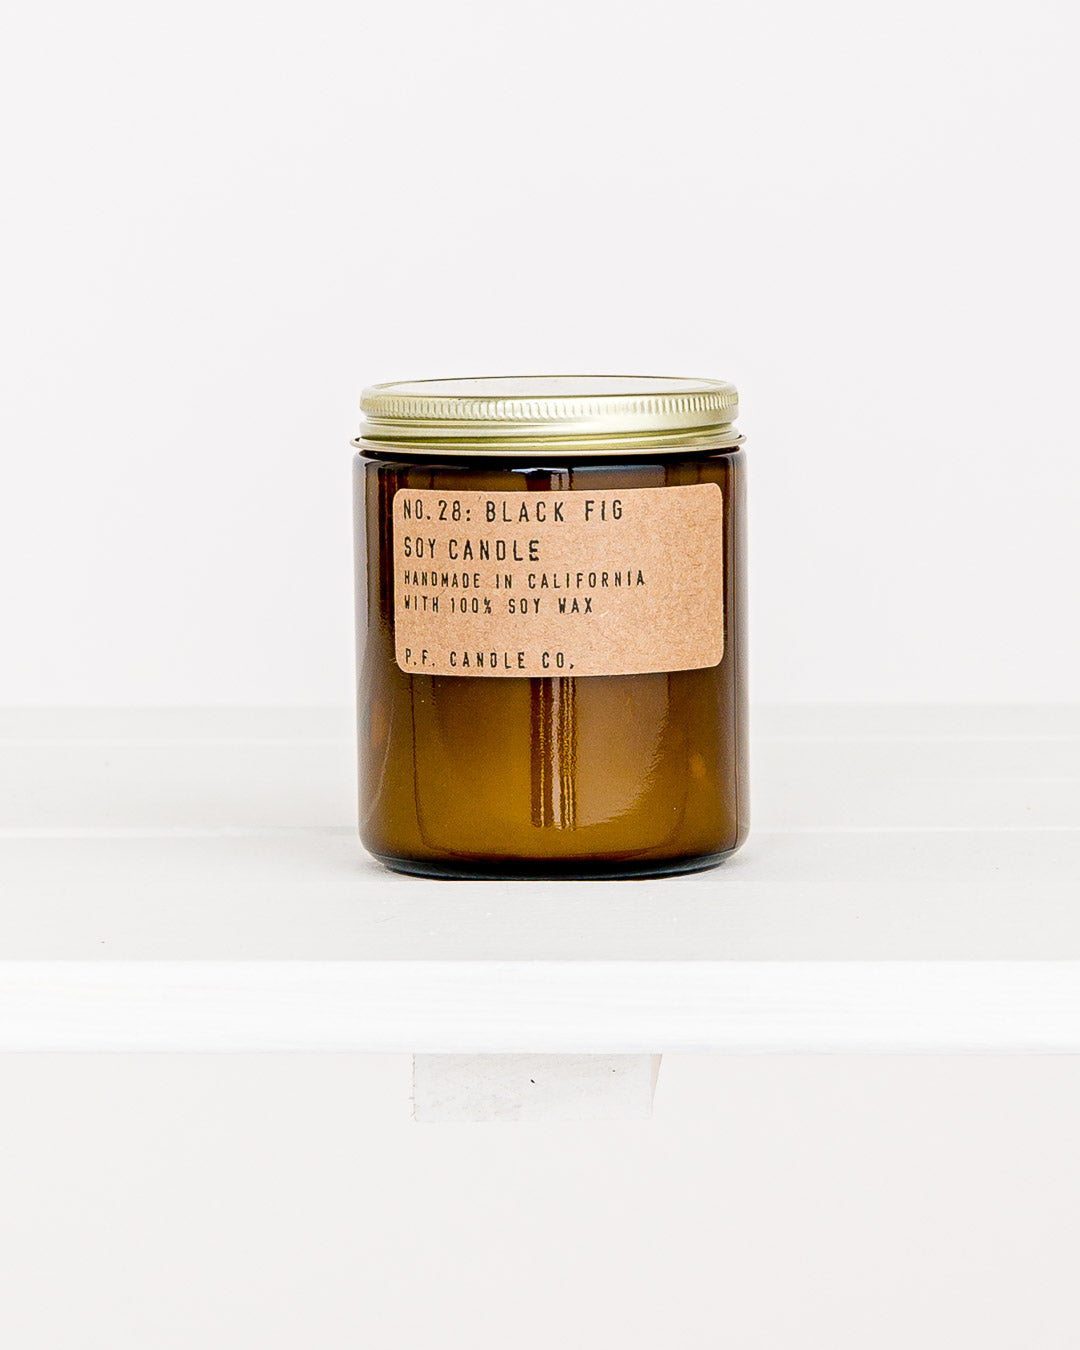 PF Candle Co. // Kerze No. 28 Black Fig